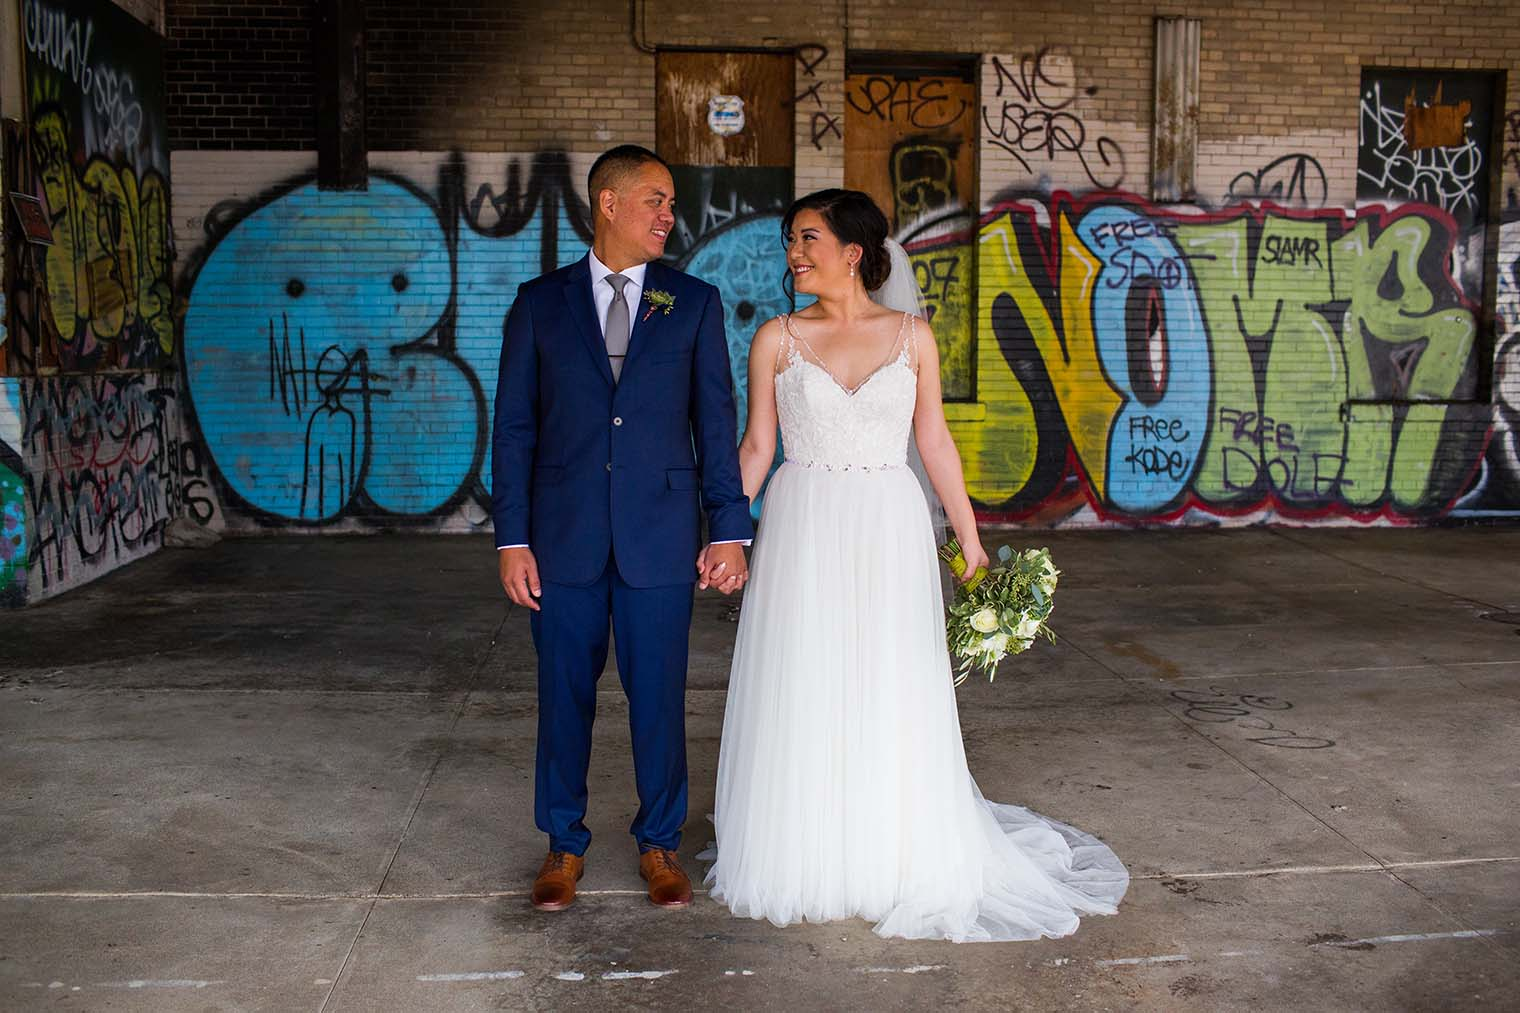 16th Street Station Wedding